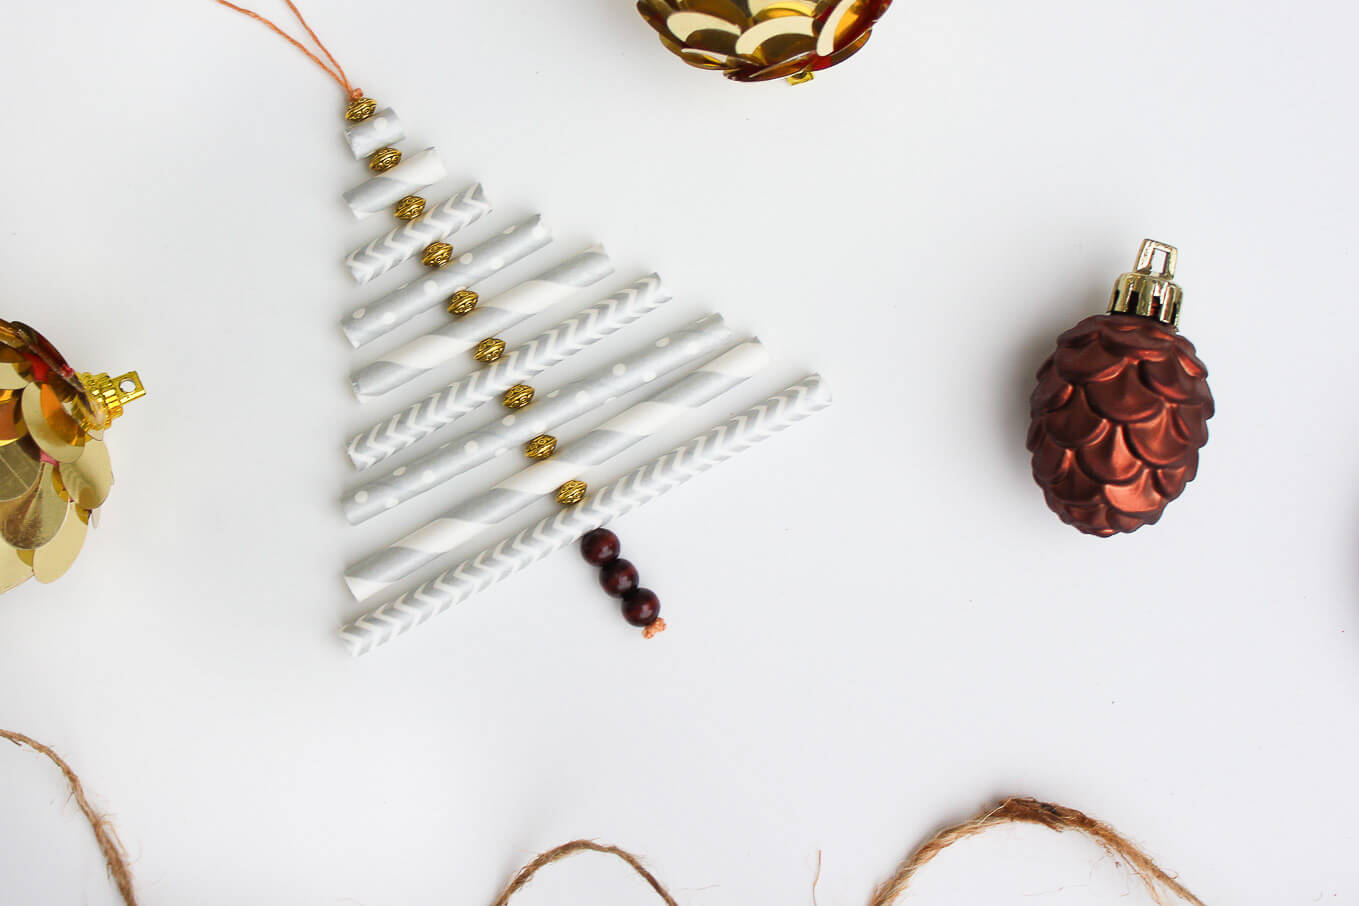 Diy Christmas Ornament Tutorial Using Paper Straws